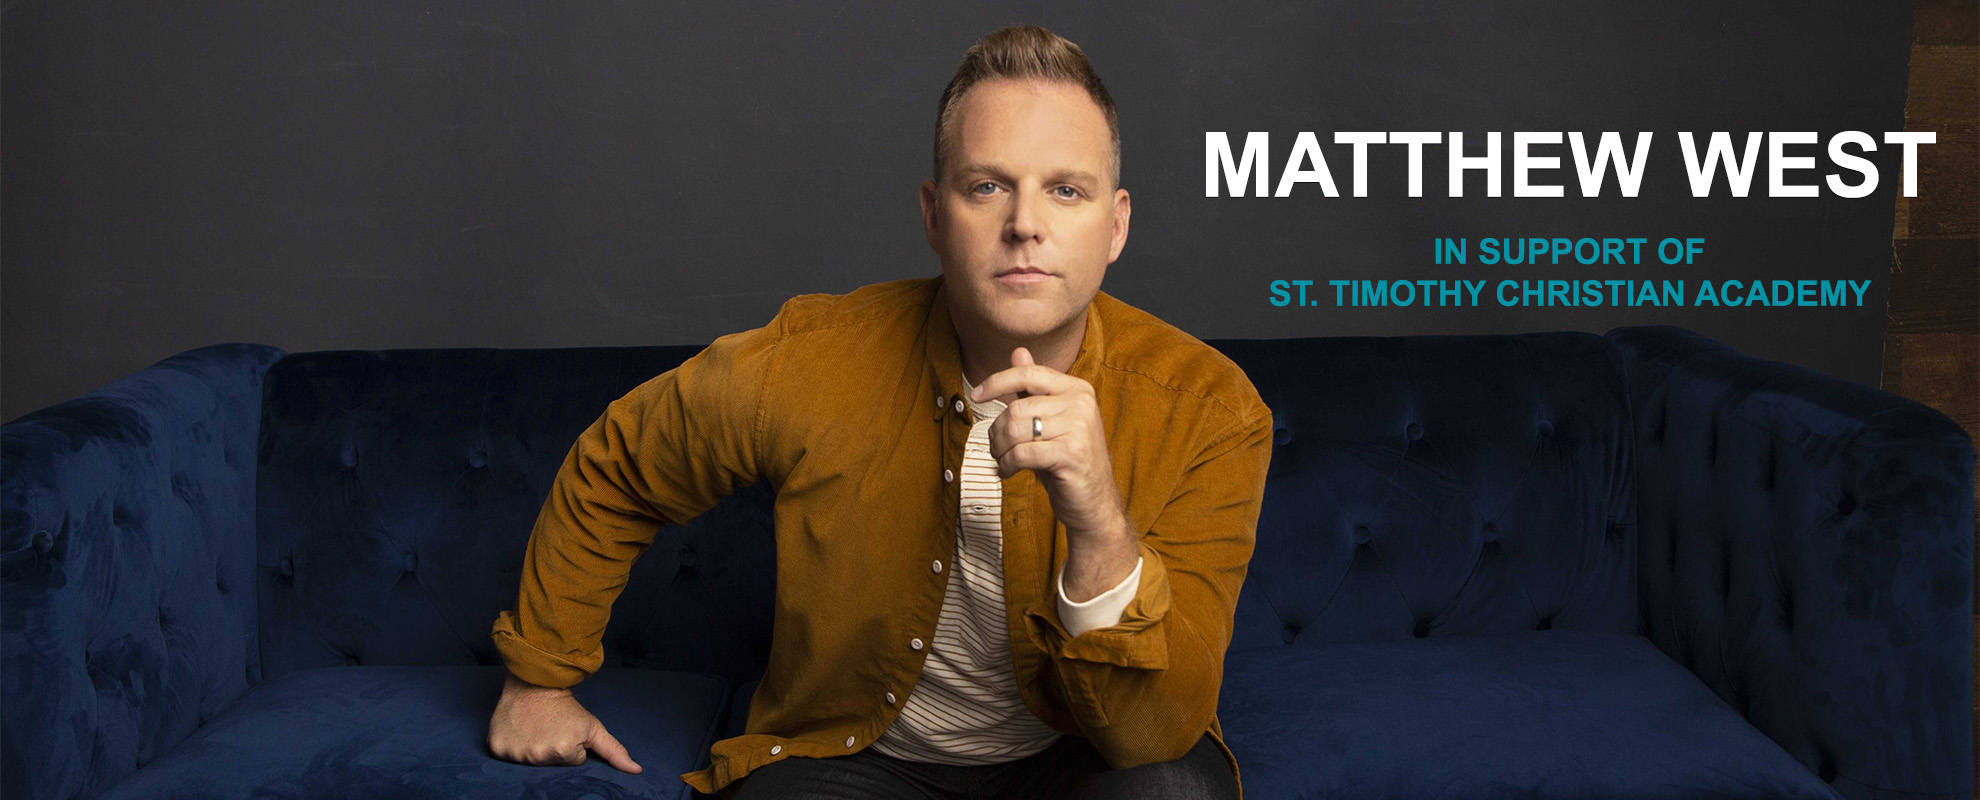 Matthew West benefit image